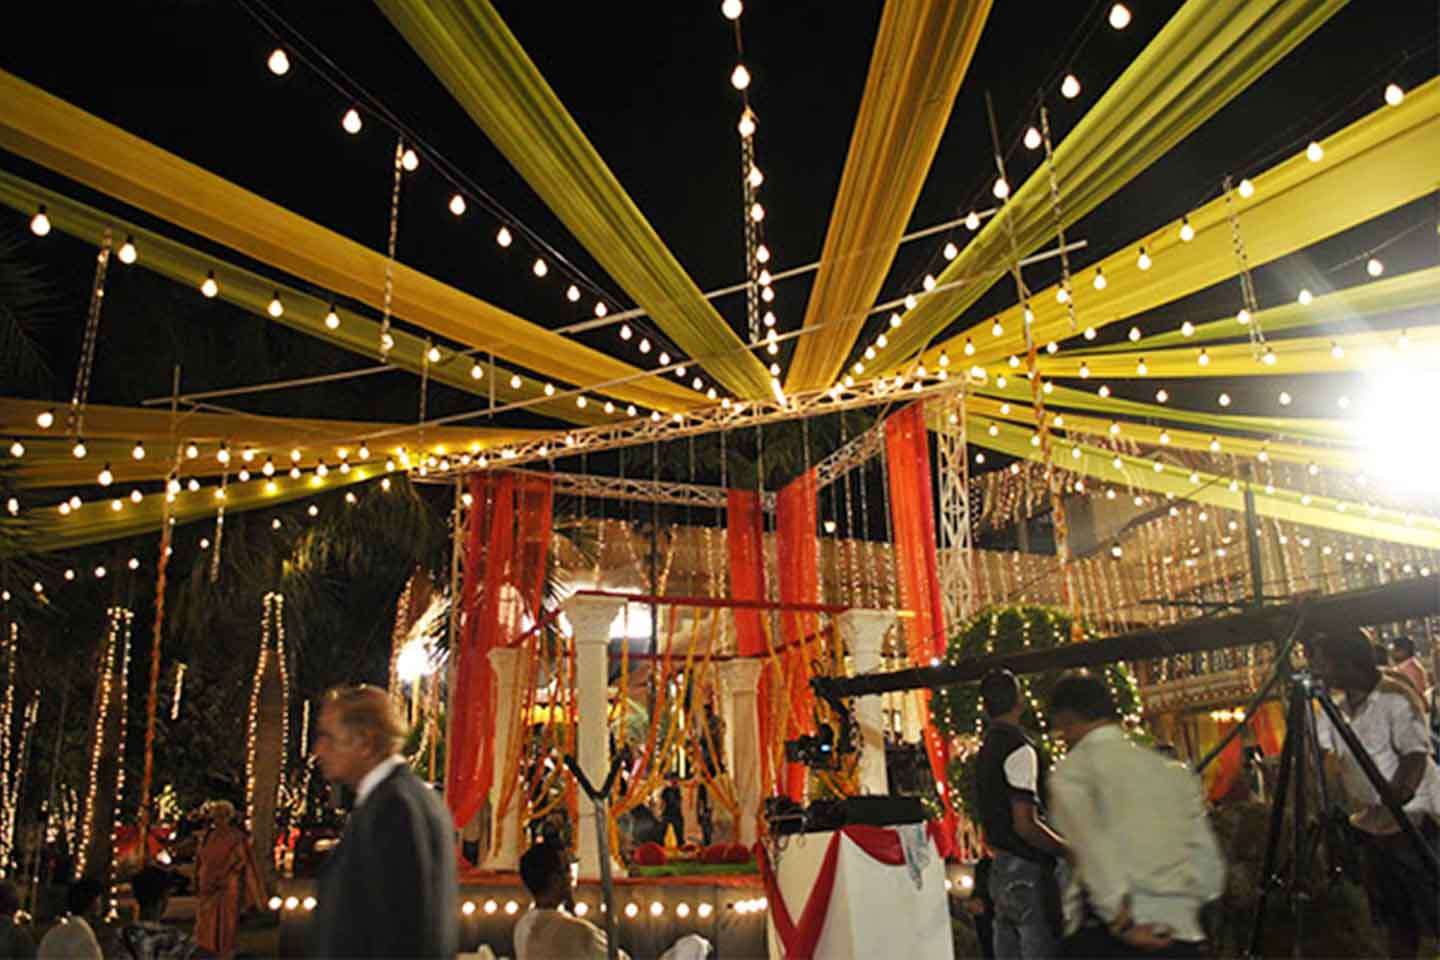 Shanqh Luxury Events is the best wedding planner and wedding decorator in India. Ranked as the top wedding planner and wedding decorator.